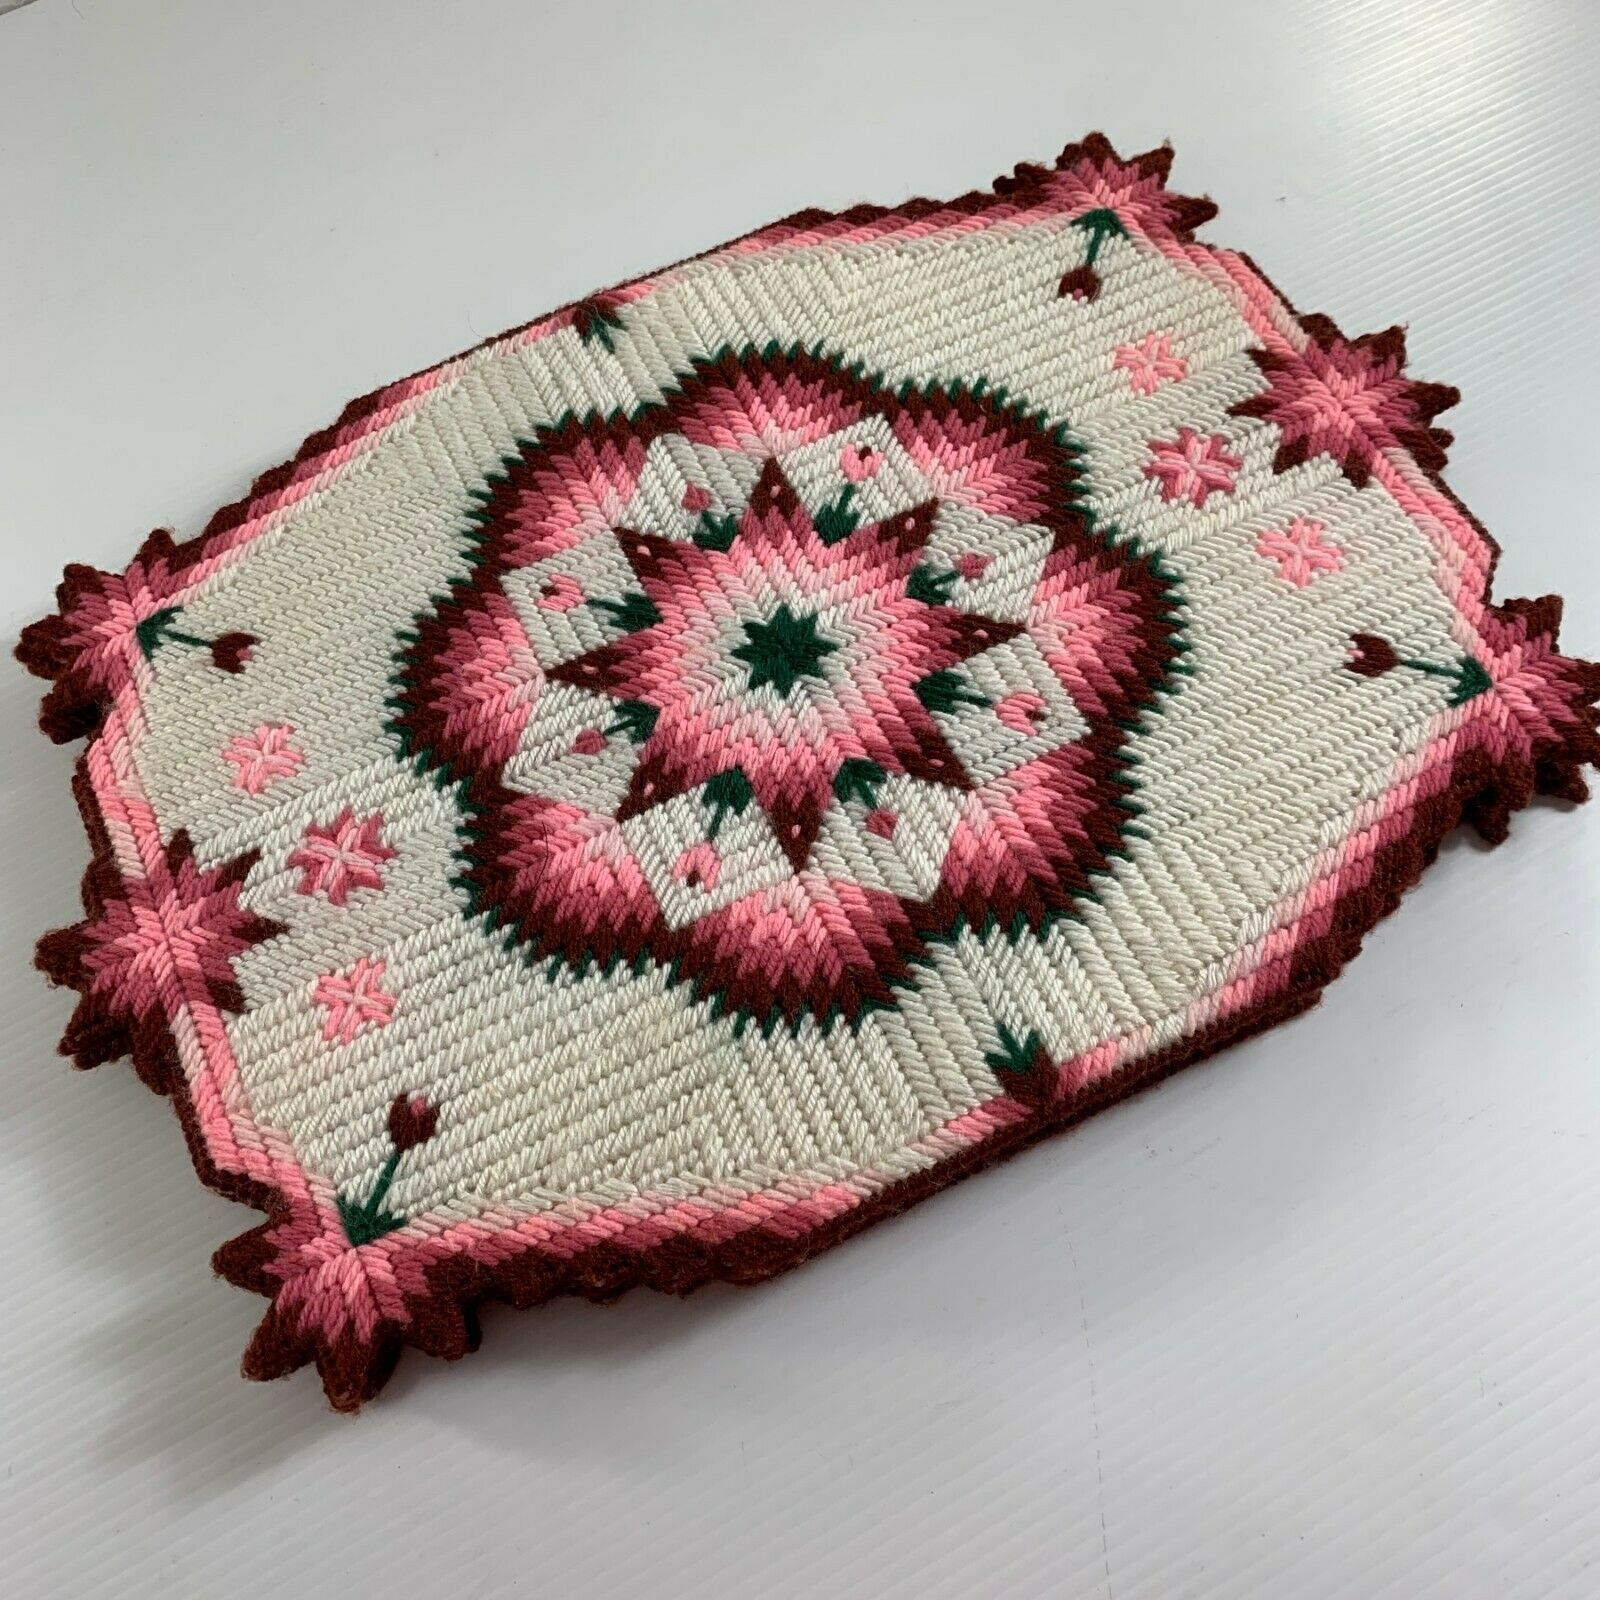 Plastic Canvas Handstitched Pink White Geometric Quilt Pattern Placemat Set of 4